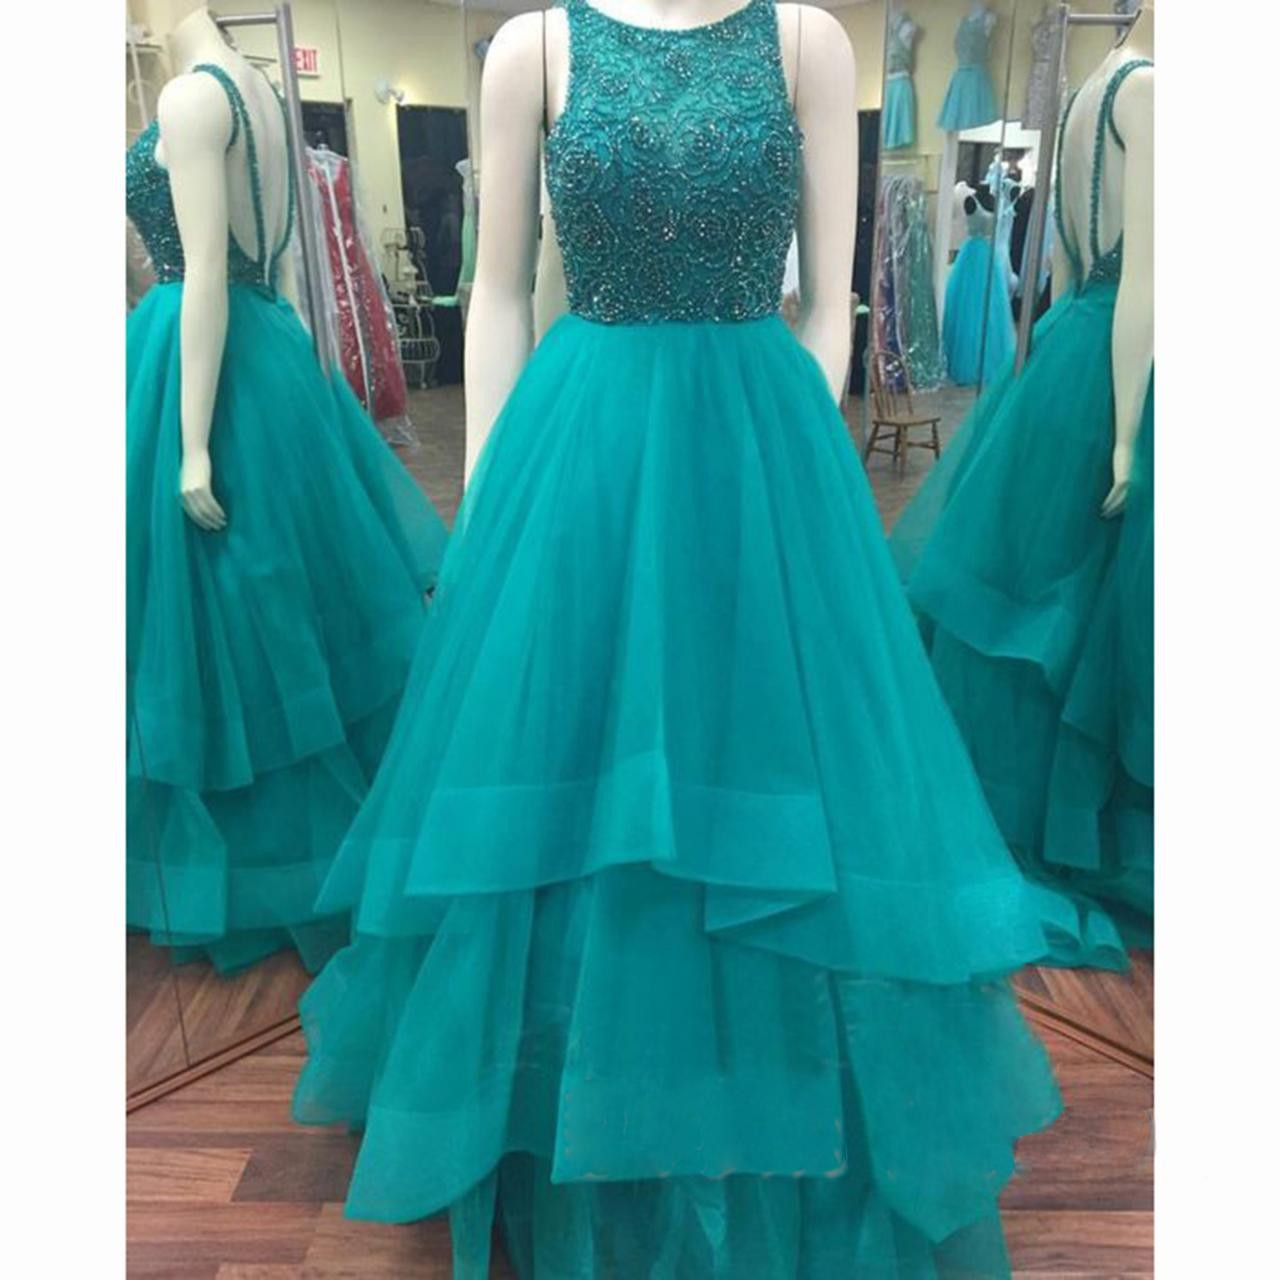 Fashion prom dress evening party gown pst dresses pinterest